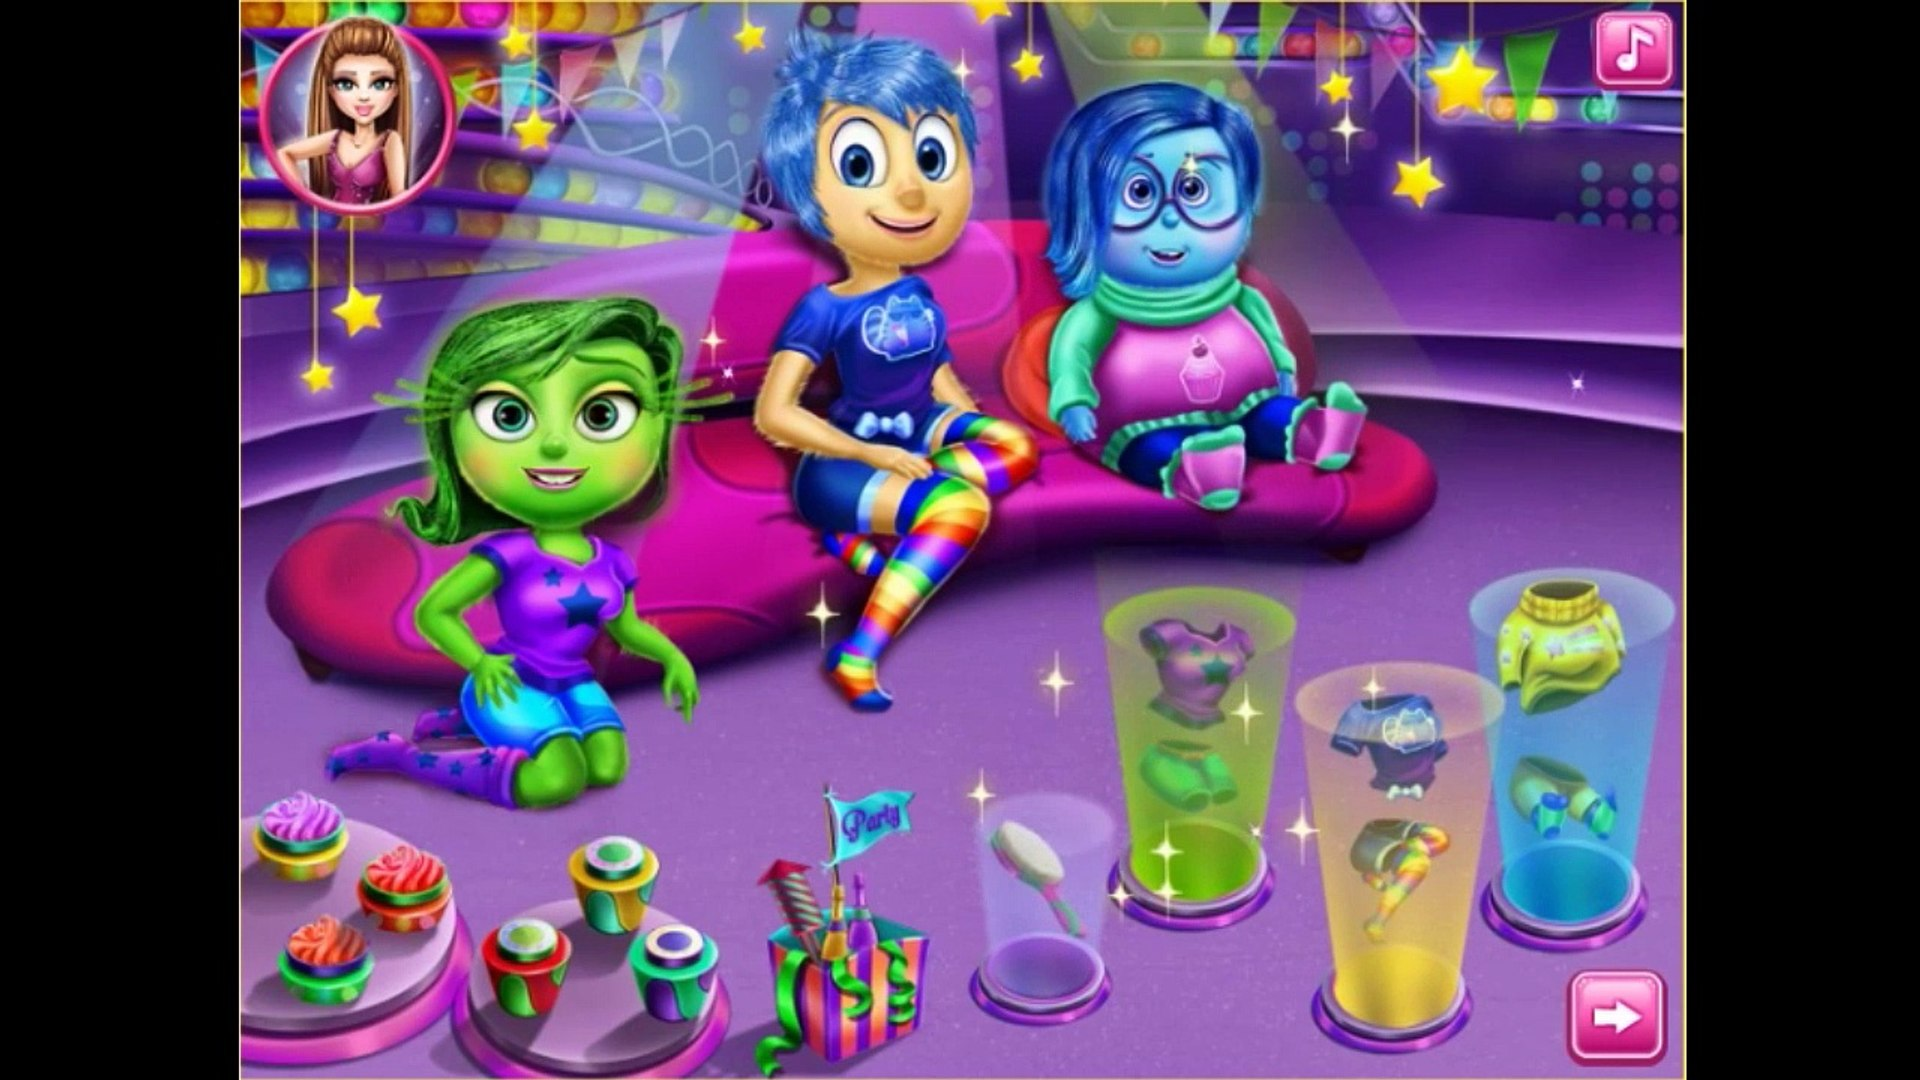 Inside Out Movie Game Games For Kids Free Online Games Video Dailymotion